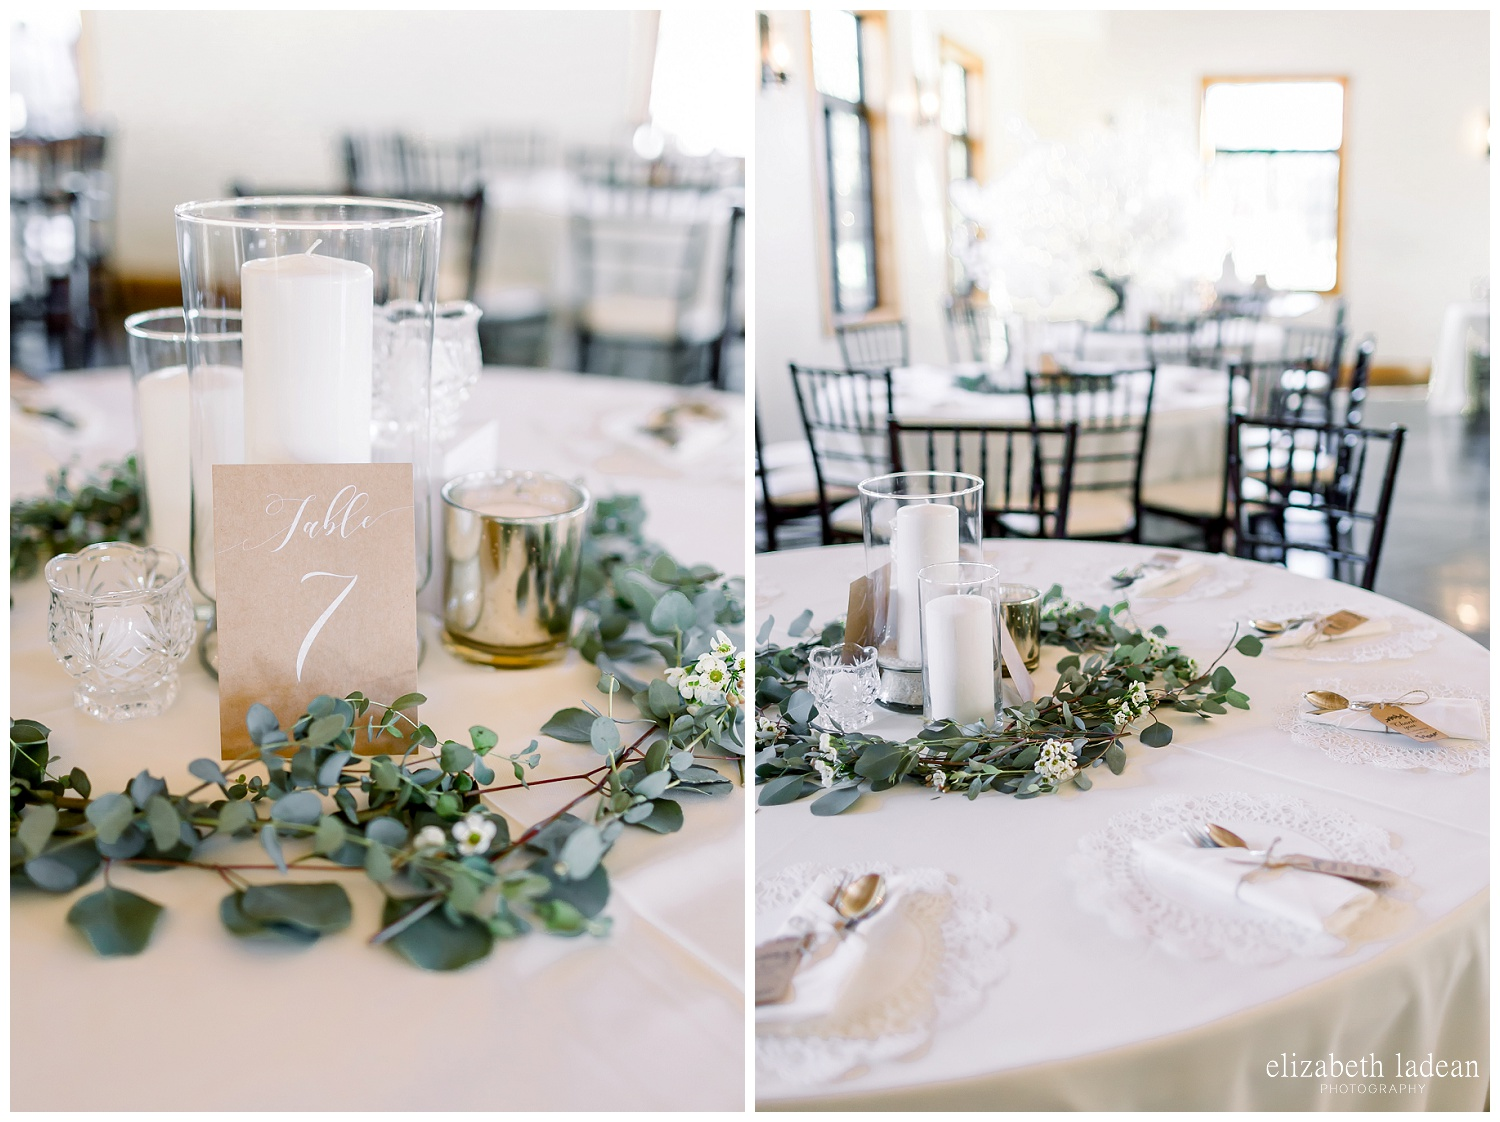 Willow-Creek-Blush-and-Blues-Outdoor-Wedding-Photography-S+Z2018-elizabeth-ladean-photography-photo_0588.jpg